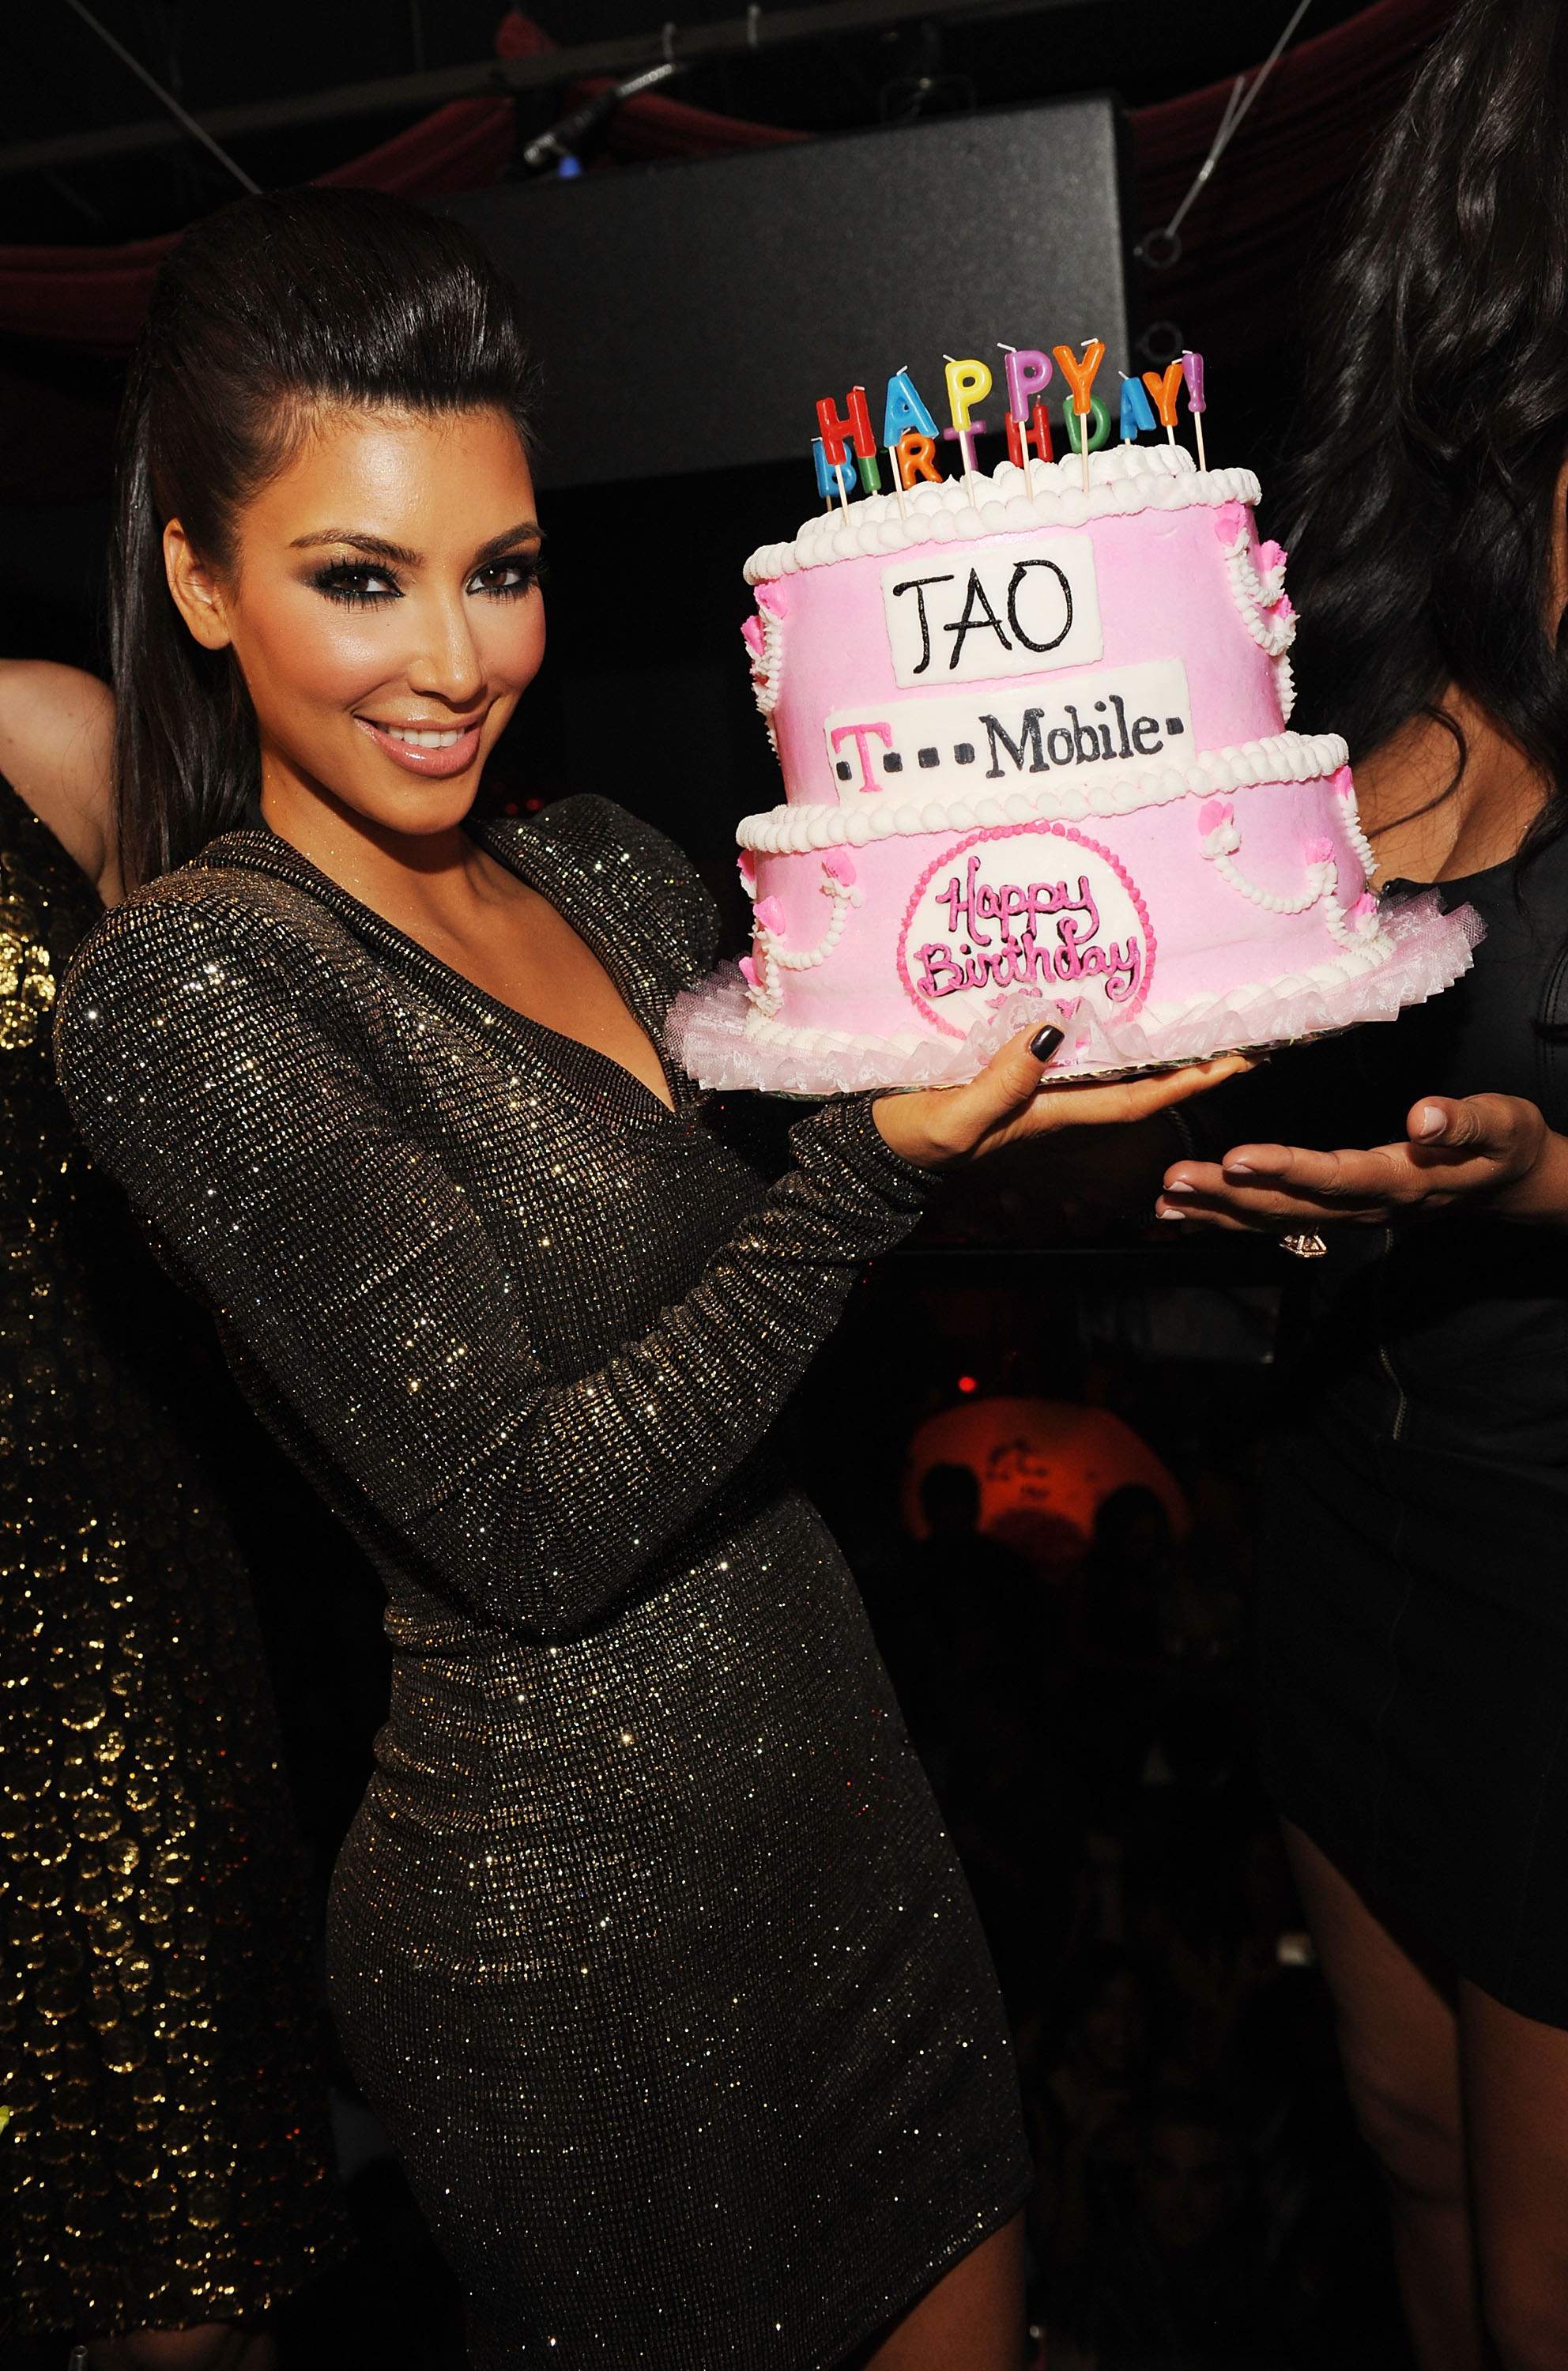 Kim Kardashian Celebrates Her 29th Birthday At TAO With T-Mobile's Motorola CLIQ